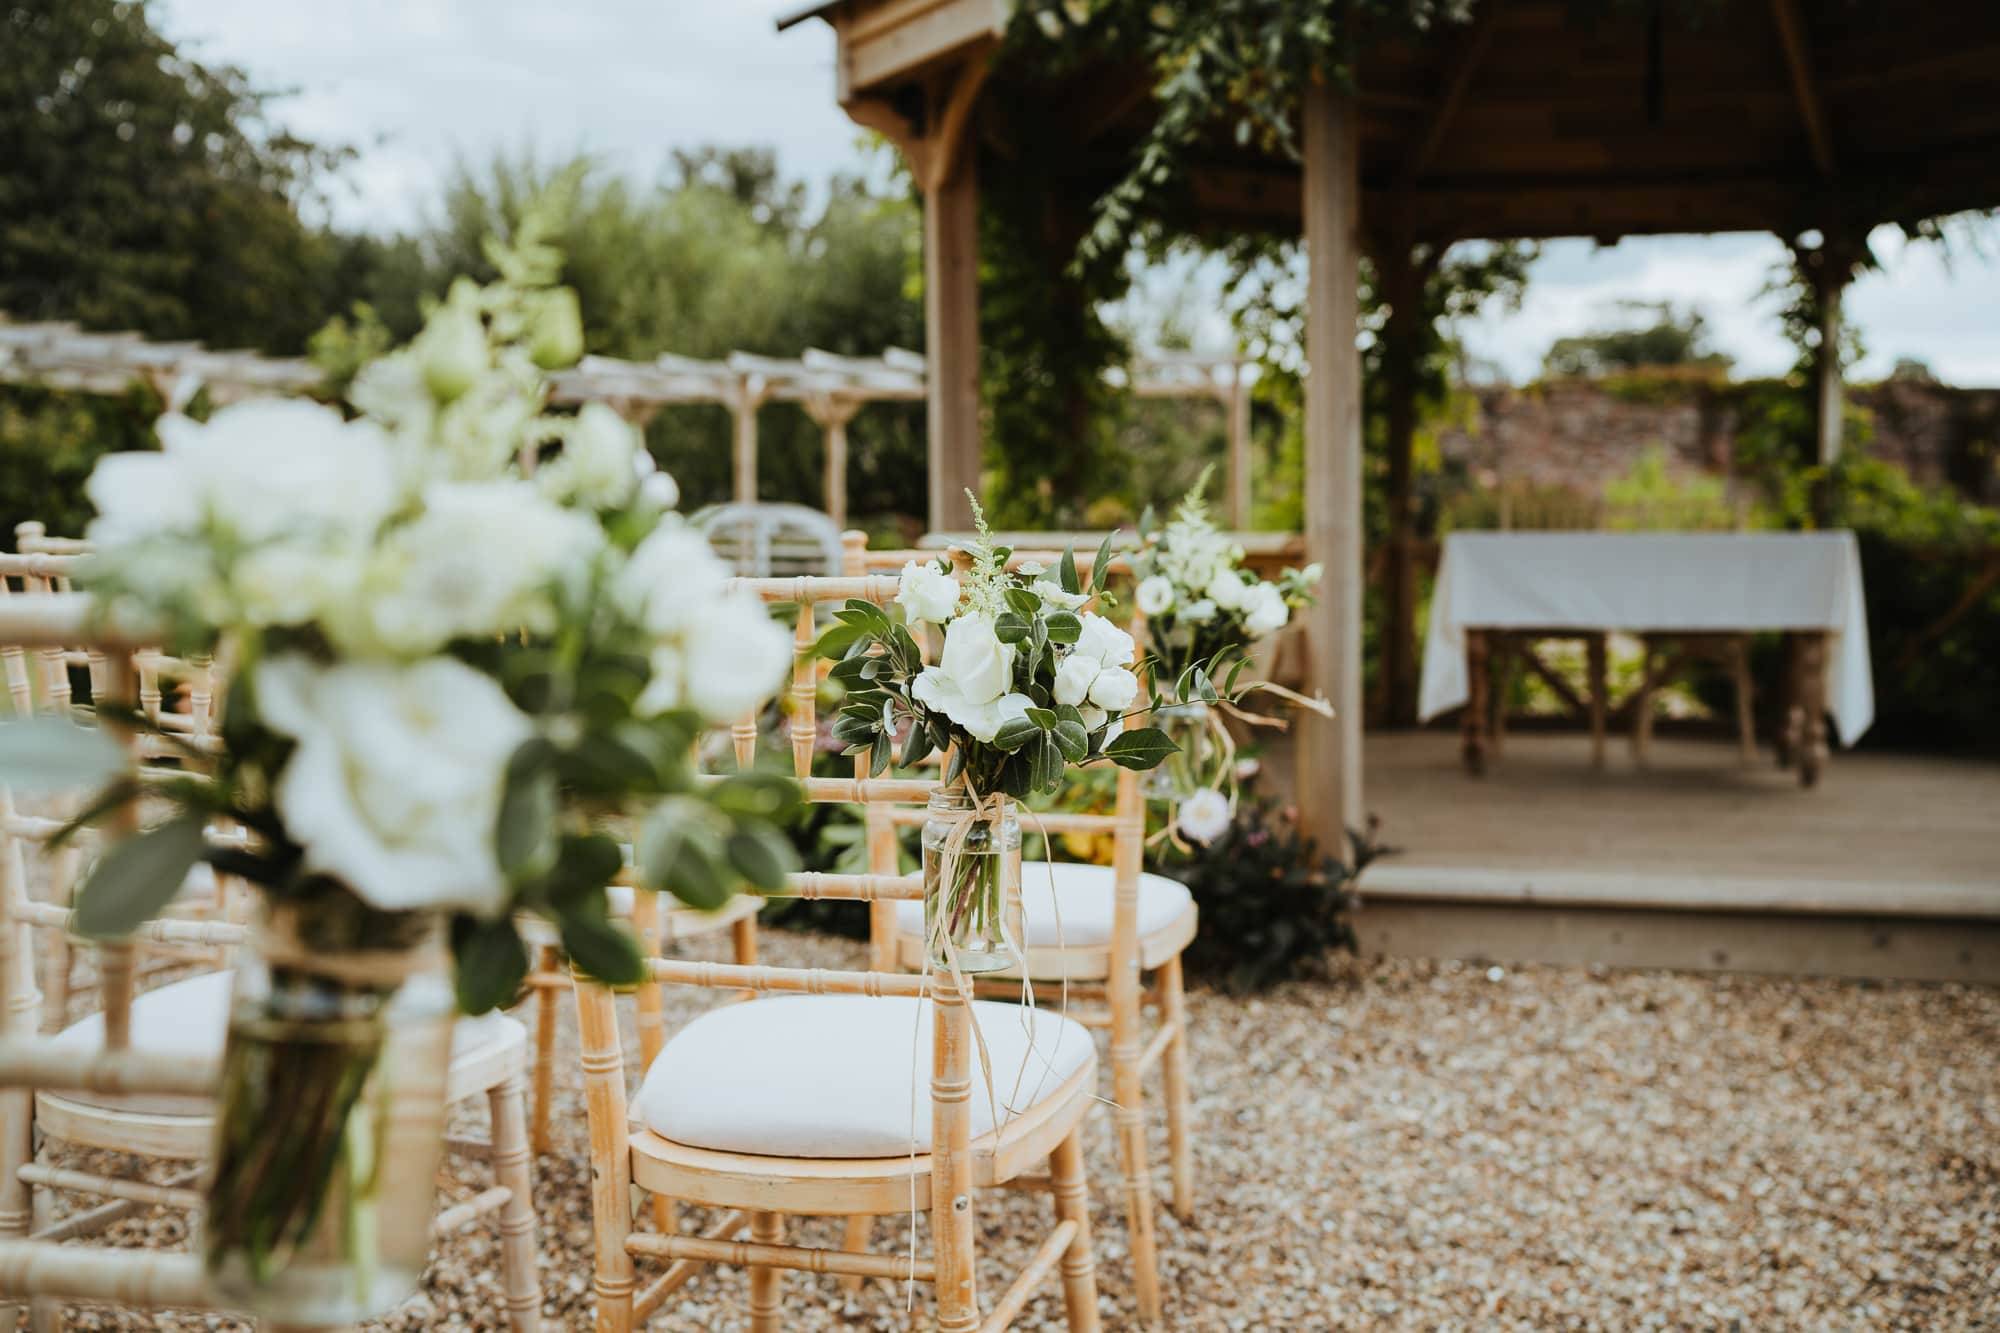 Rustic chairs dressed for an intimate wedding ceremony at The Secret Garden